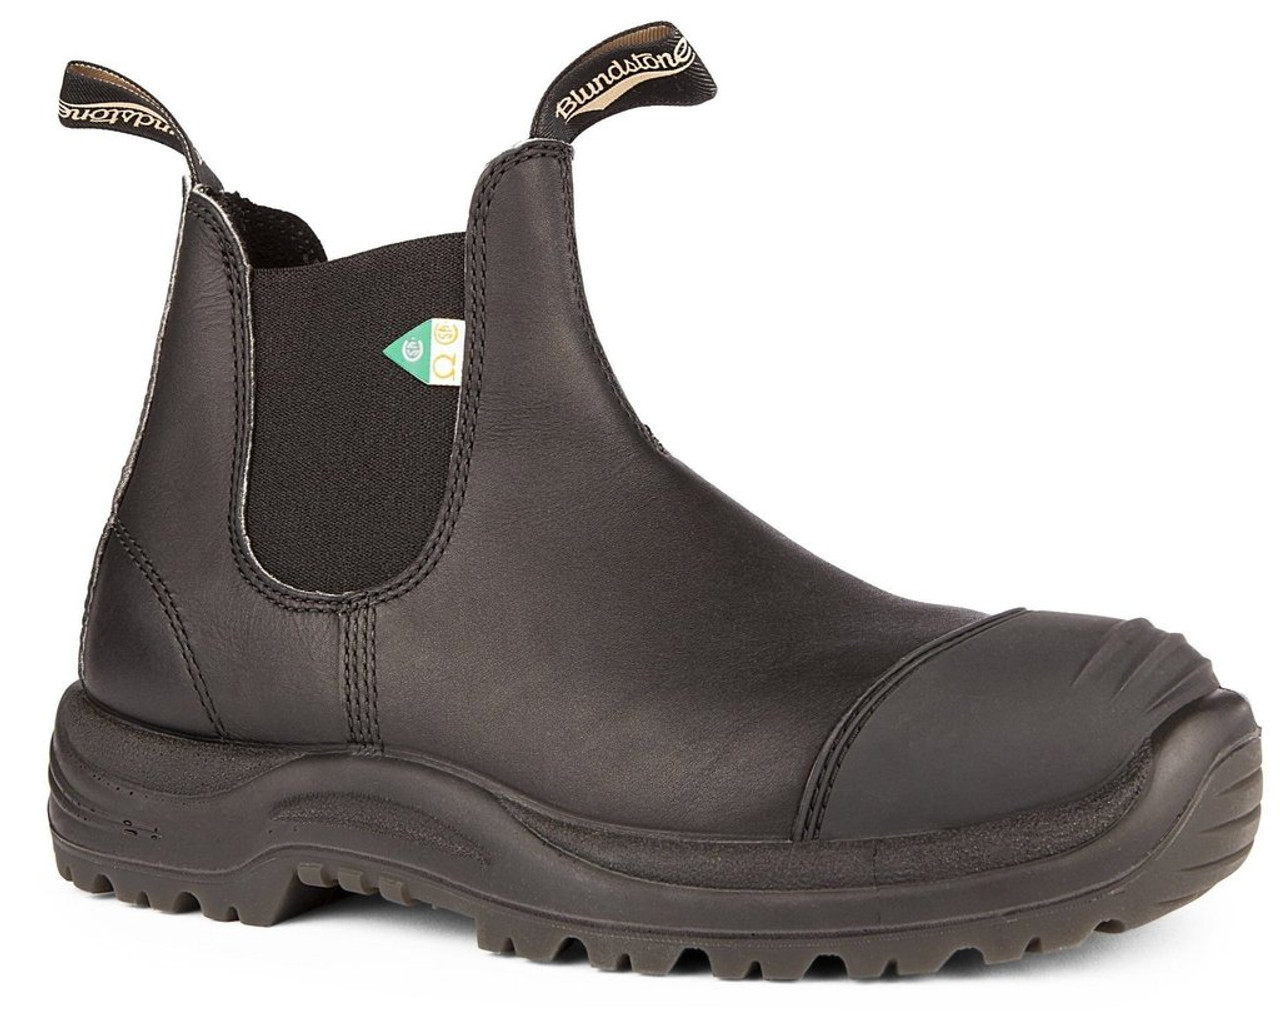 7a800f4e8fdd7 Blundstone 168 Black CSA Rubber Toe Cap Safety Boot *FREE SHIPPING ...